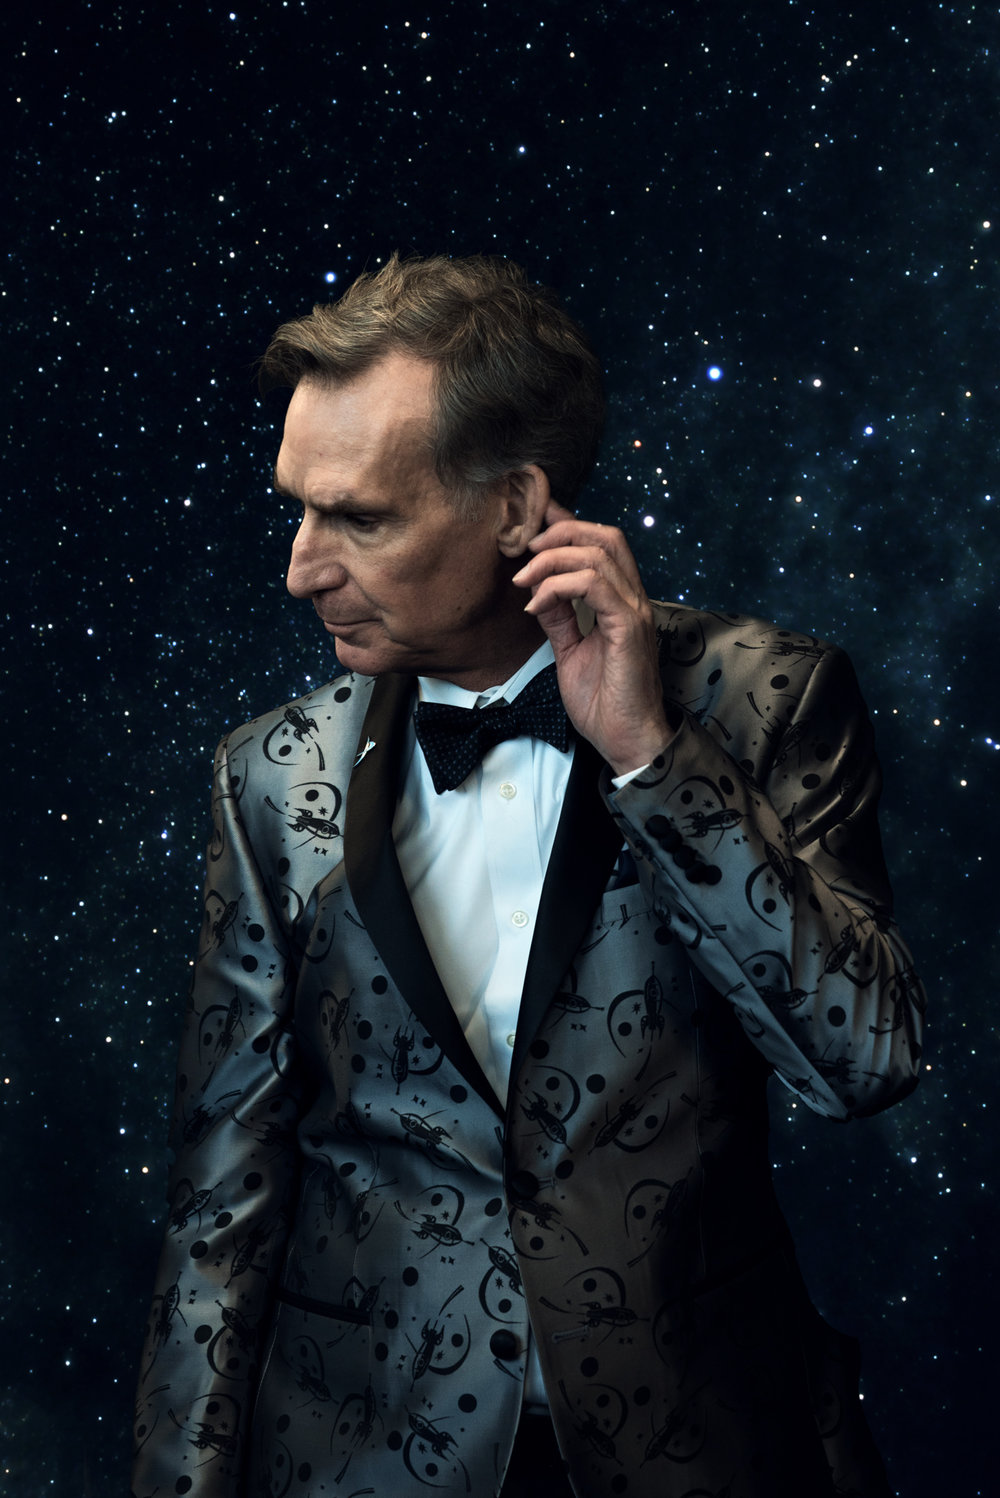 The man himself! Billy Nye was one of the presenters for Nick Graham's show at NYFW, inspired by science and our solar system. I grabbed a couple quick shots with him backstage and thought it space would be an appropriate backdrop for him. Shot on my Sony A7RII w/ Sony 24-70 2.8 G Master | ISO 250 | 1/125s | f/2.8